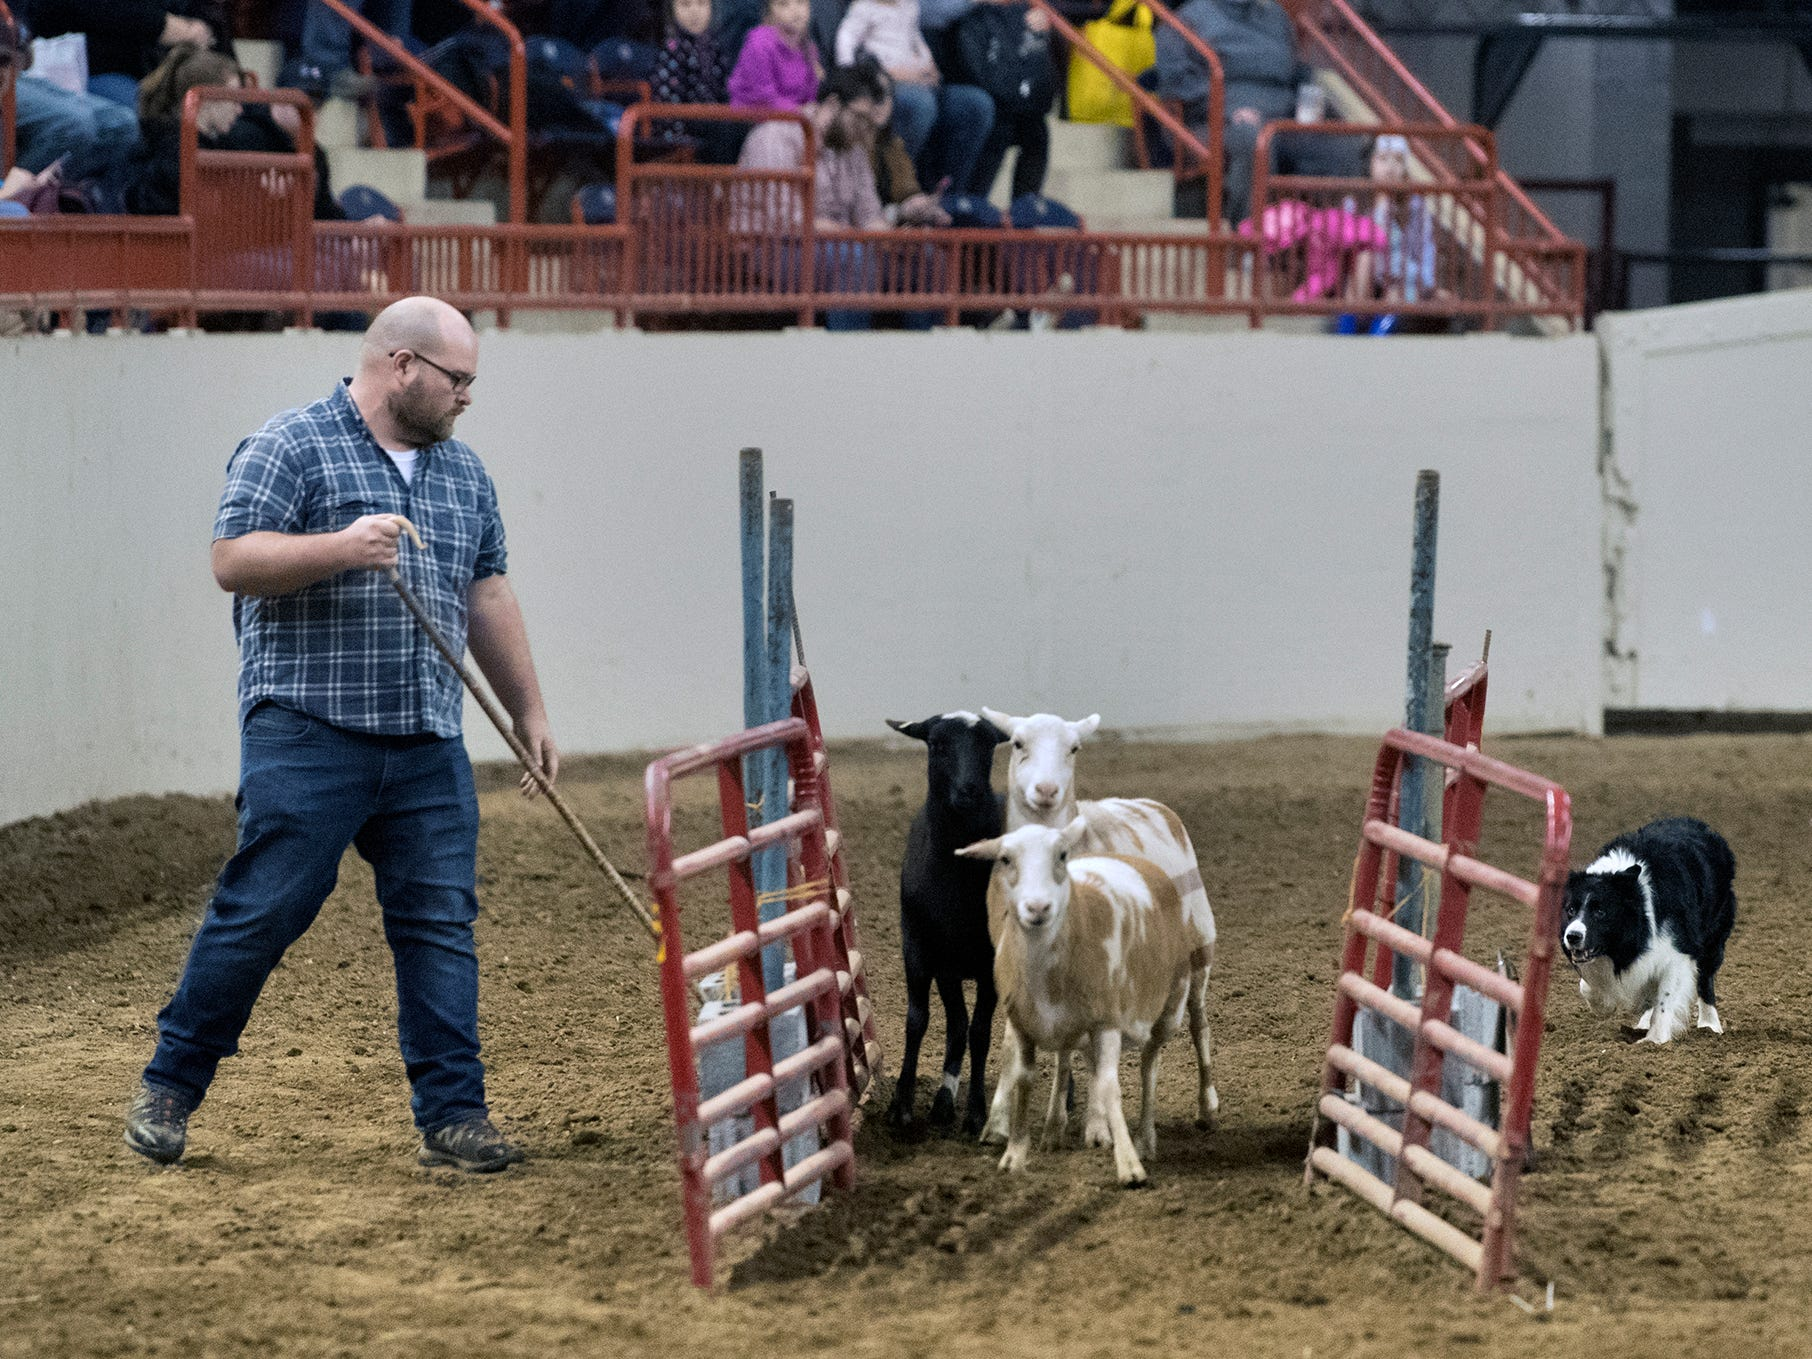 Michael Polites, of Mount Carmel, works with his herding dog named Taff as he directs sheep through one of several chutes and around obstacles. The Pennsylvania Farm Show Sheepdog Trials were part of The 103rd Pennsylvania Farm Show in Harrisburg Sunday January 6, 2019.